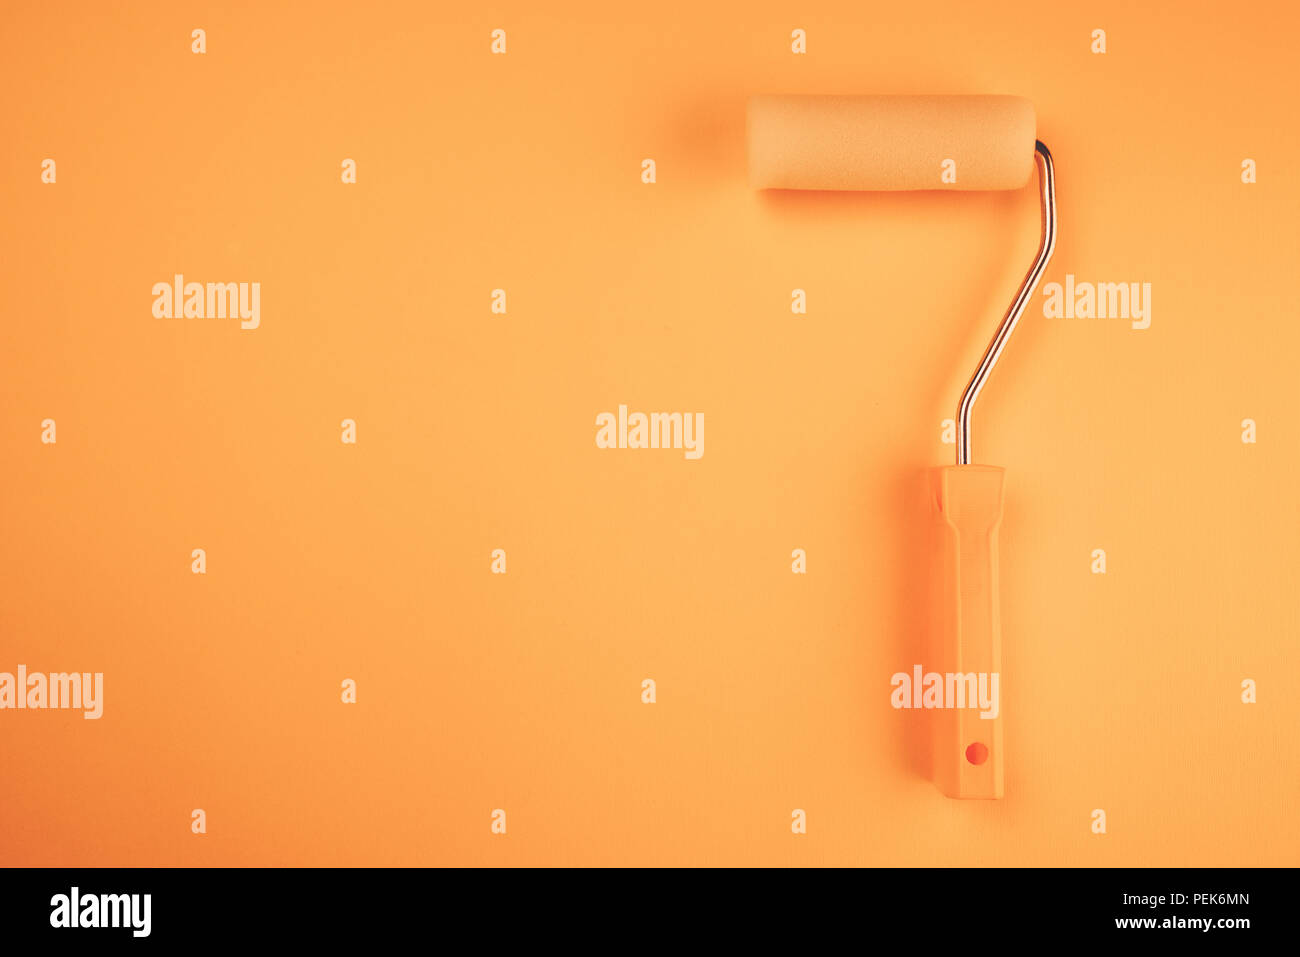 Paint roller for wall painting in vivid warm colors - Stock Image